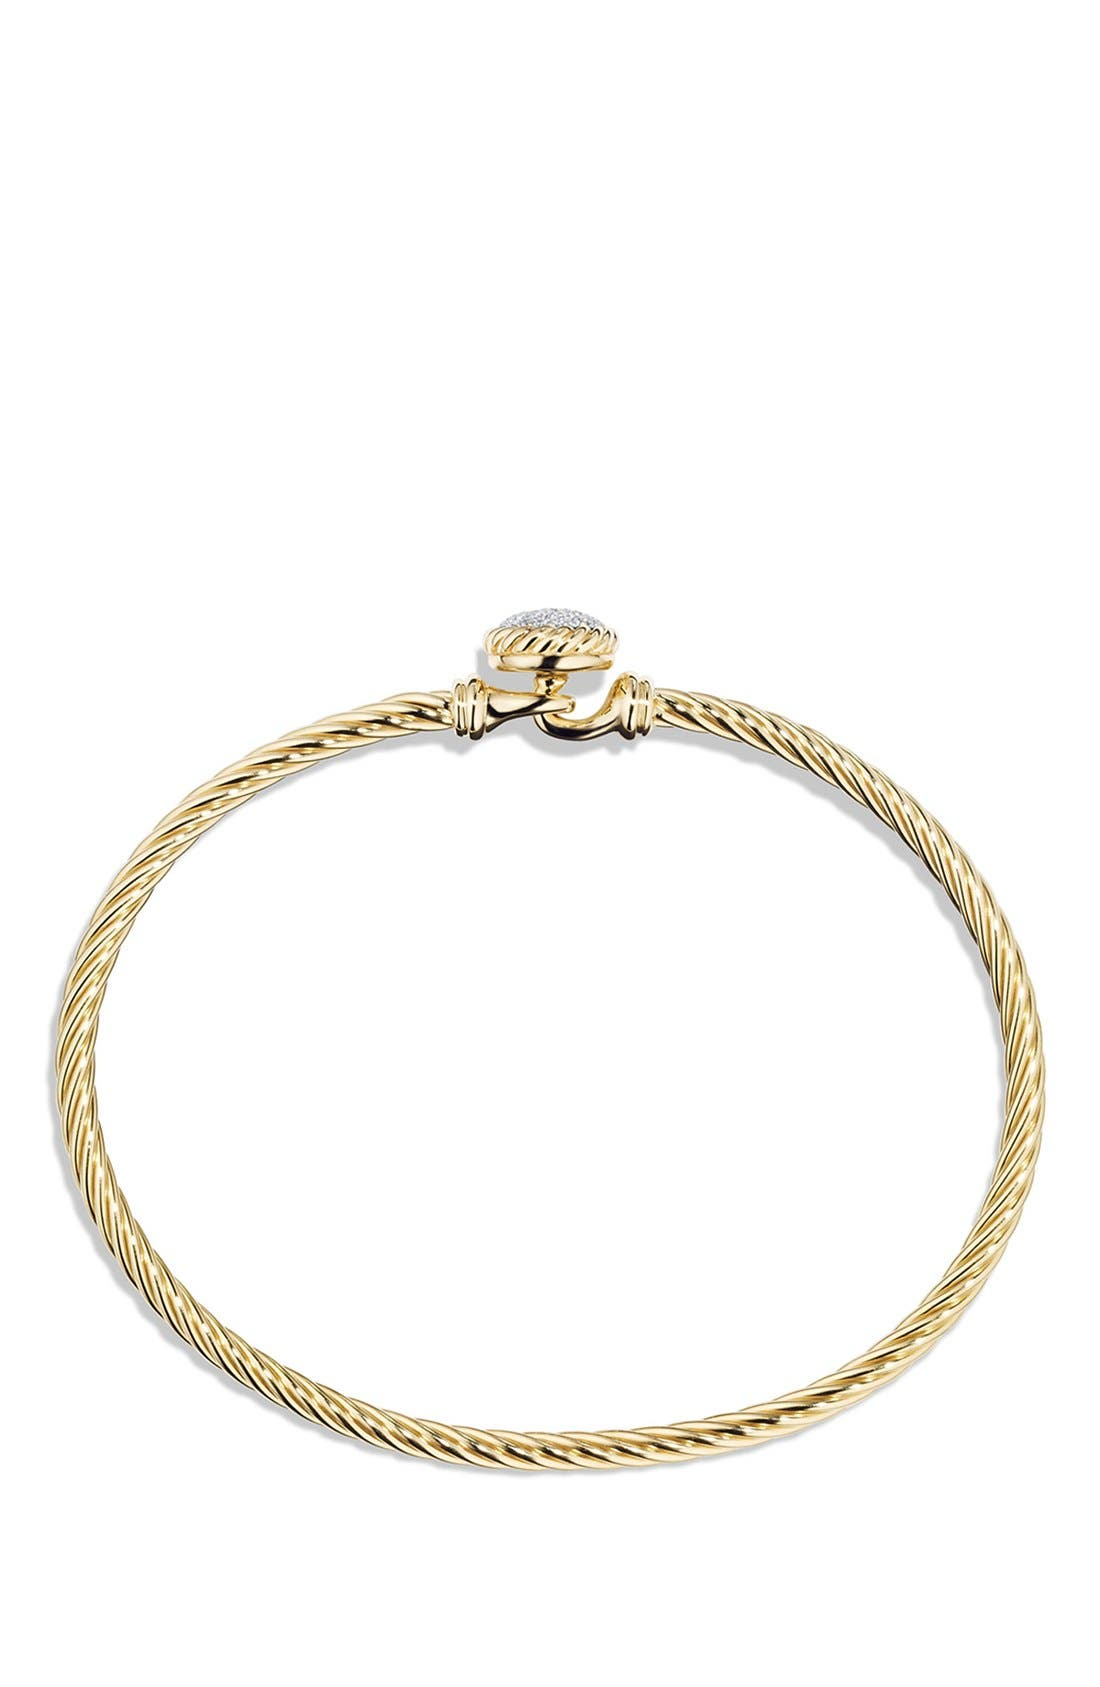 'Châtelaine' Bracelet with Diamonds in 18K Gold,                             Alternate thumbnail 2, color,                             710